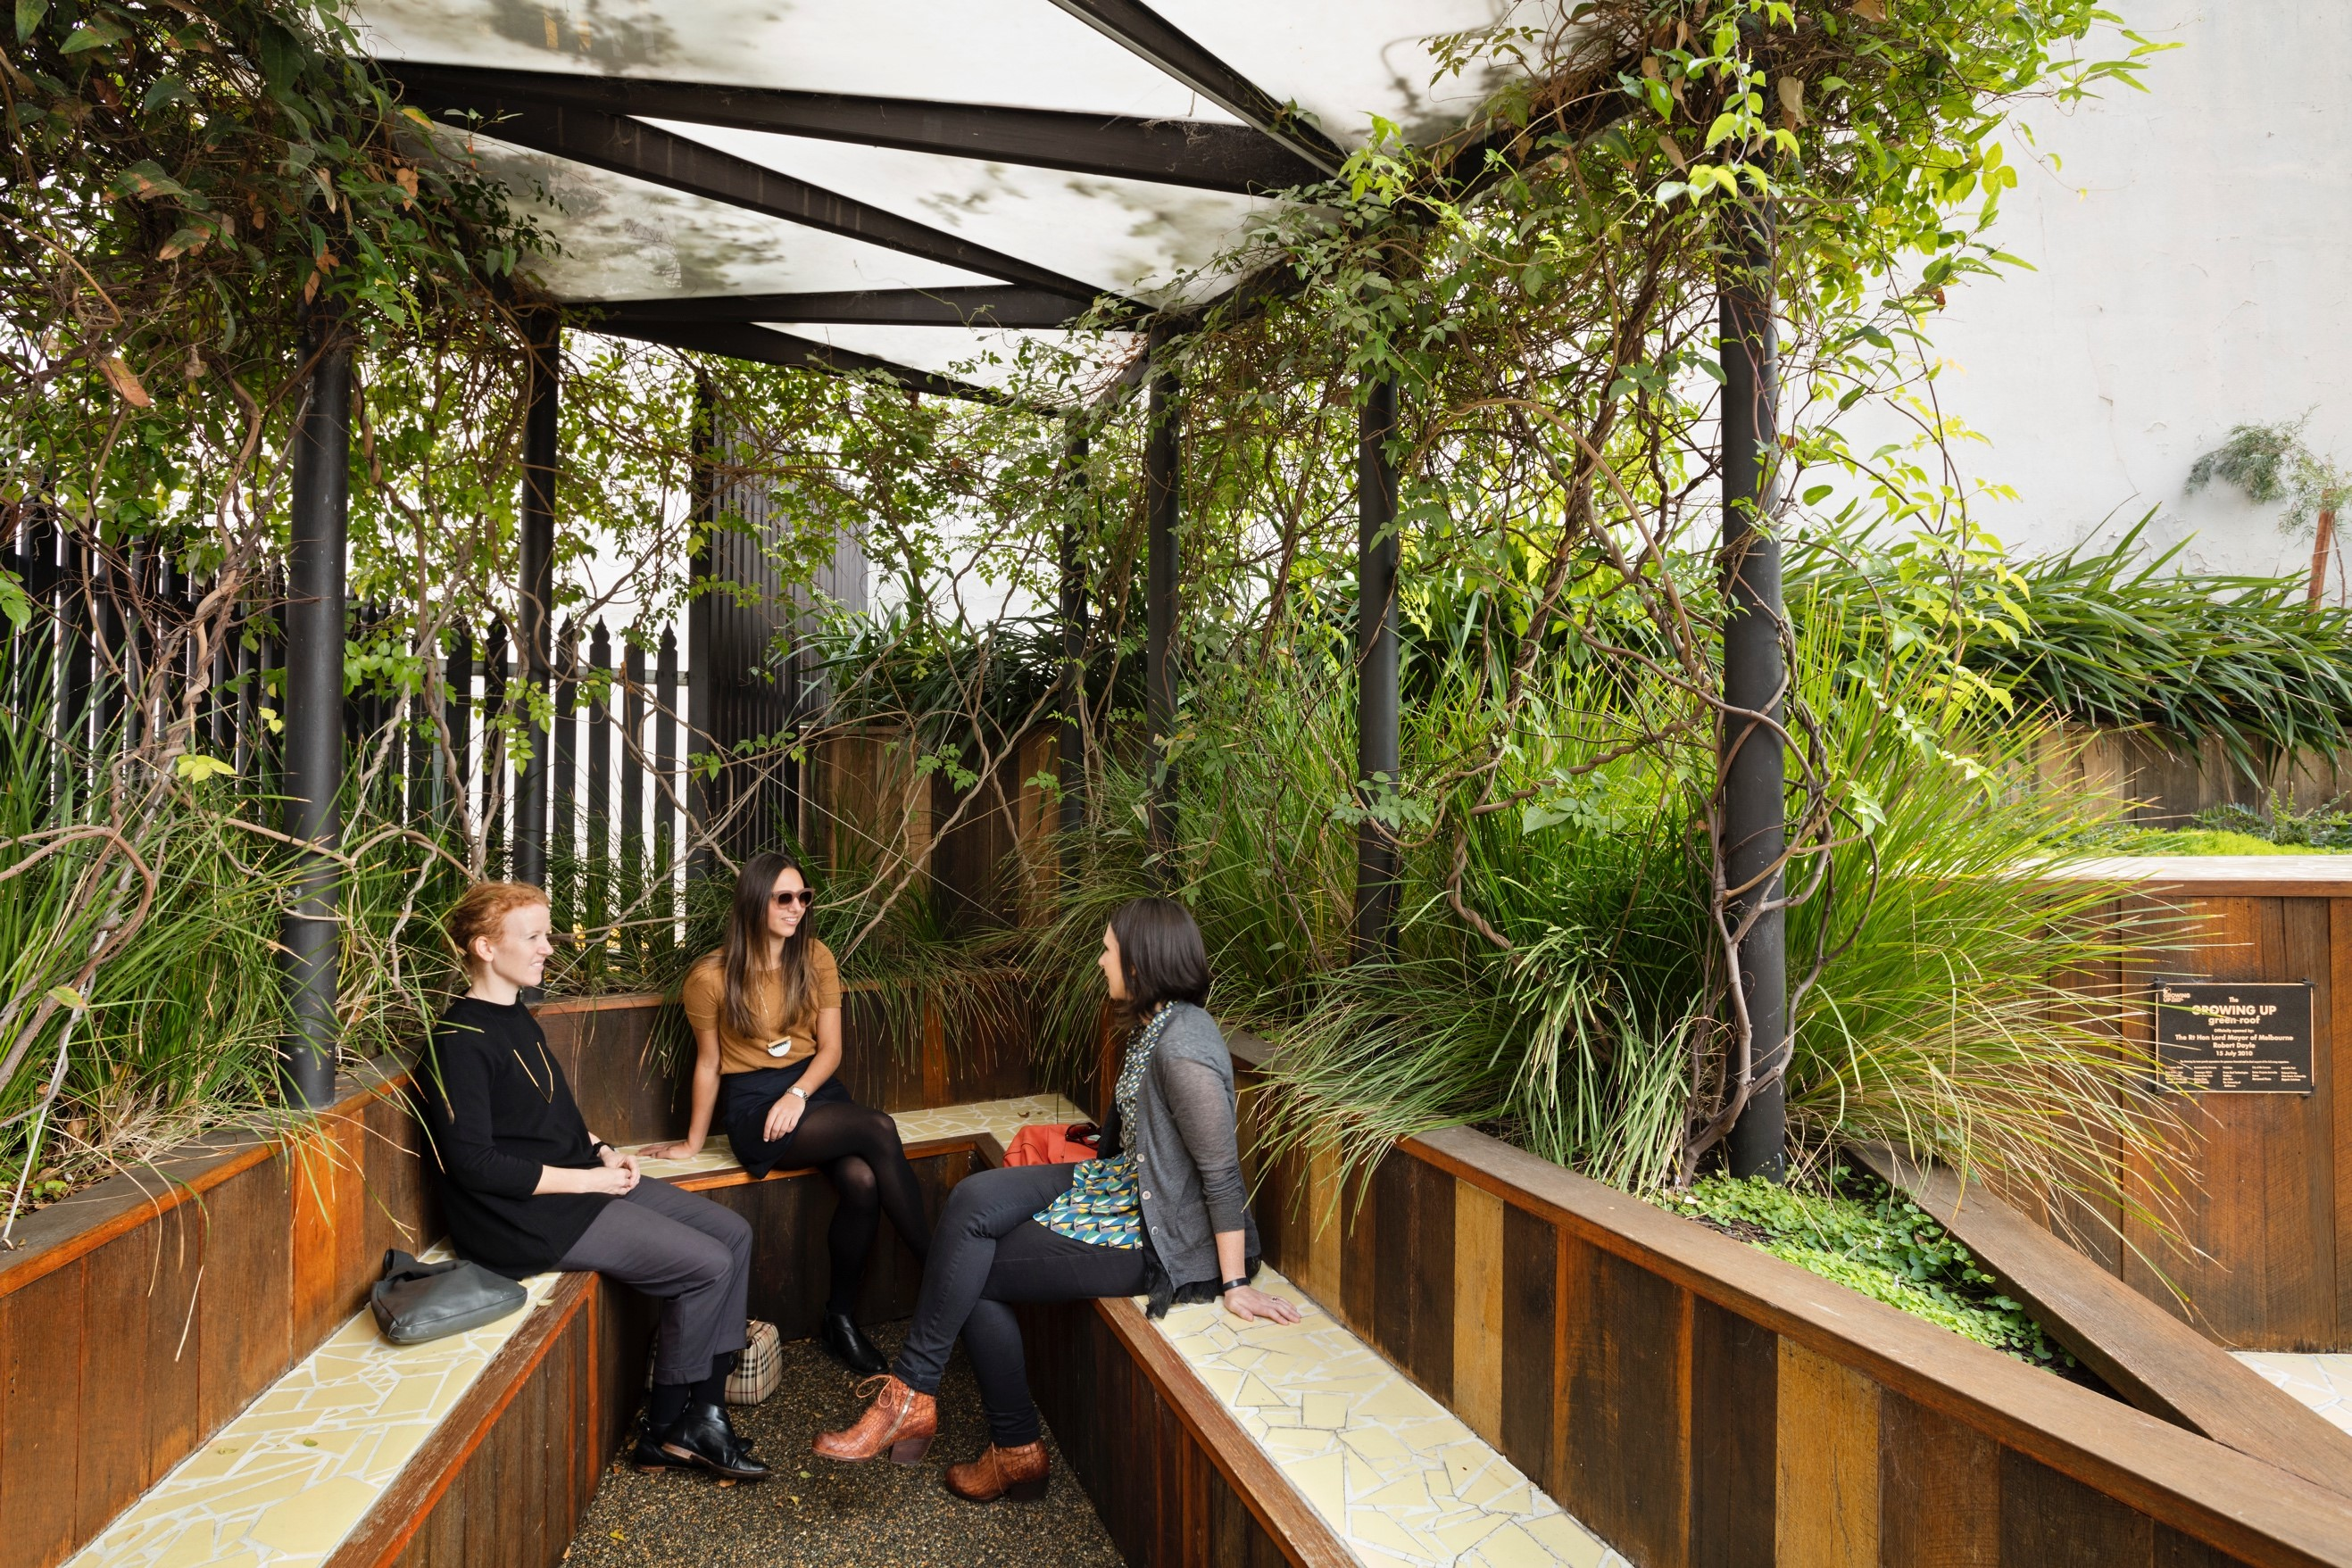 Gallery Of Growing Up Green Rooftop By Bent Architecture Local Australian Architecture & Design Melbourne, Vic Image 1